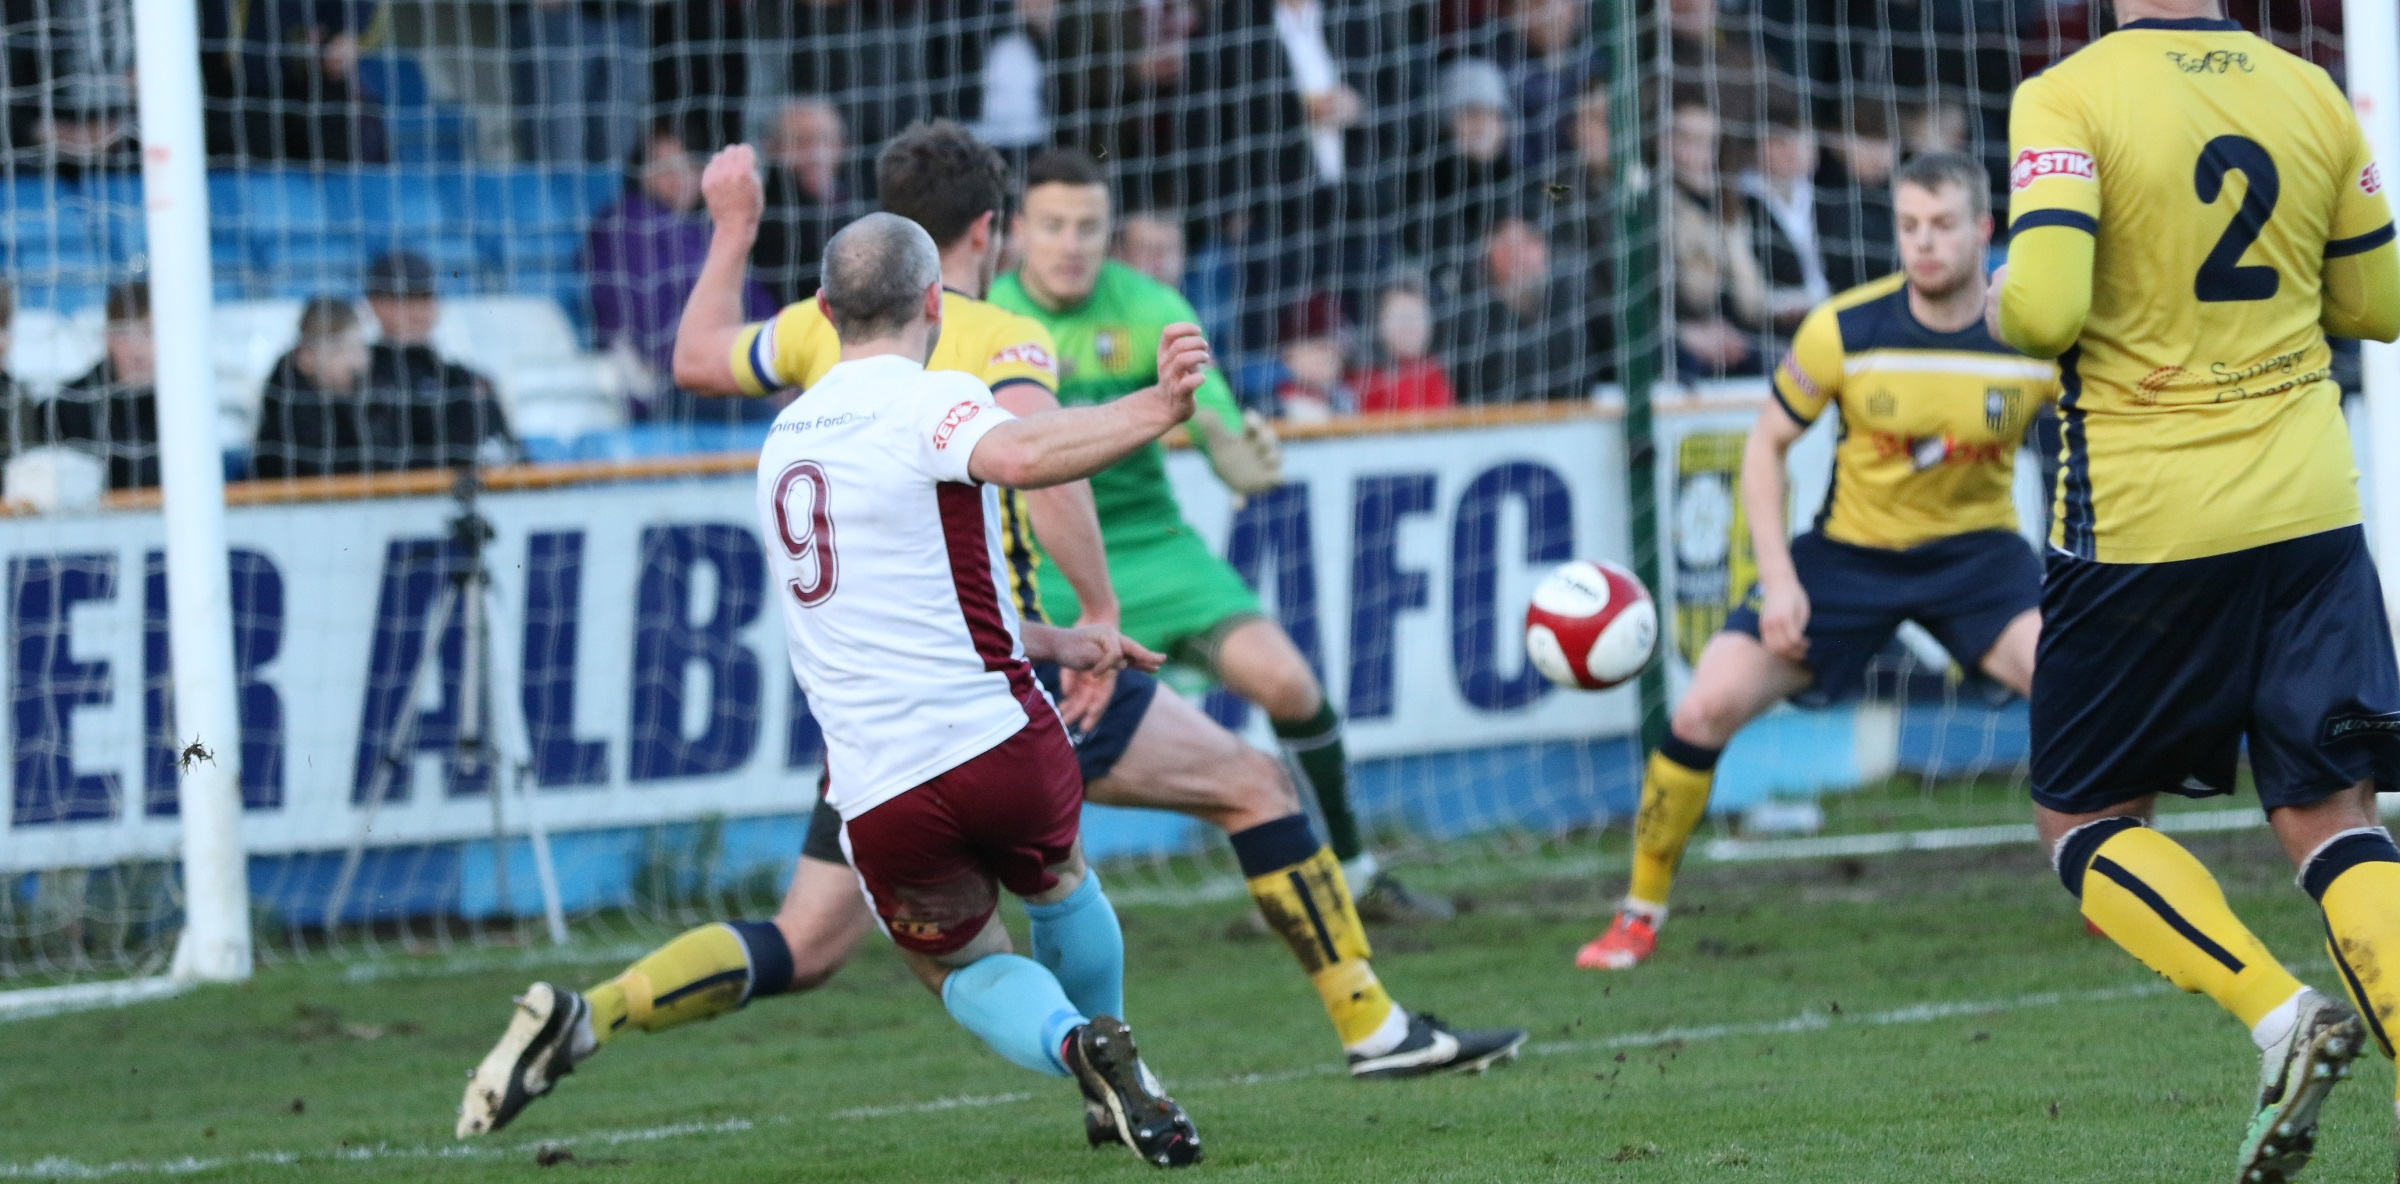 Tadcaster Albion 0-2 South Shields: Mariners back to winning ways